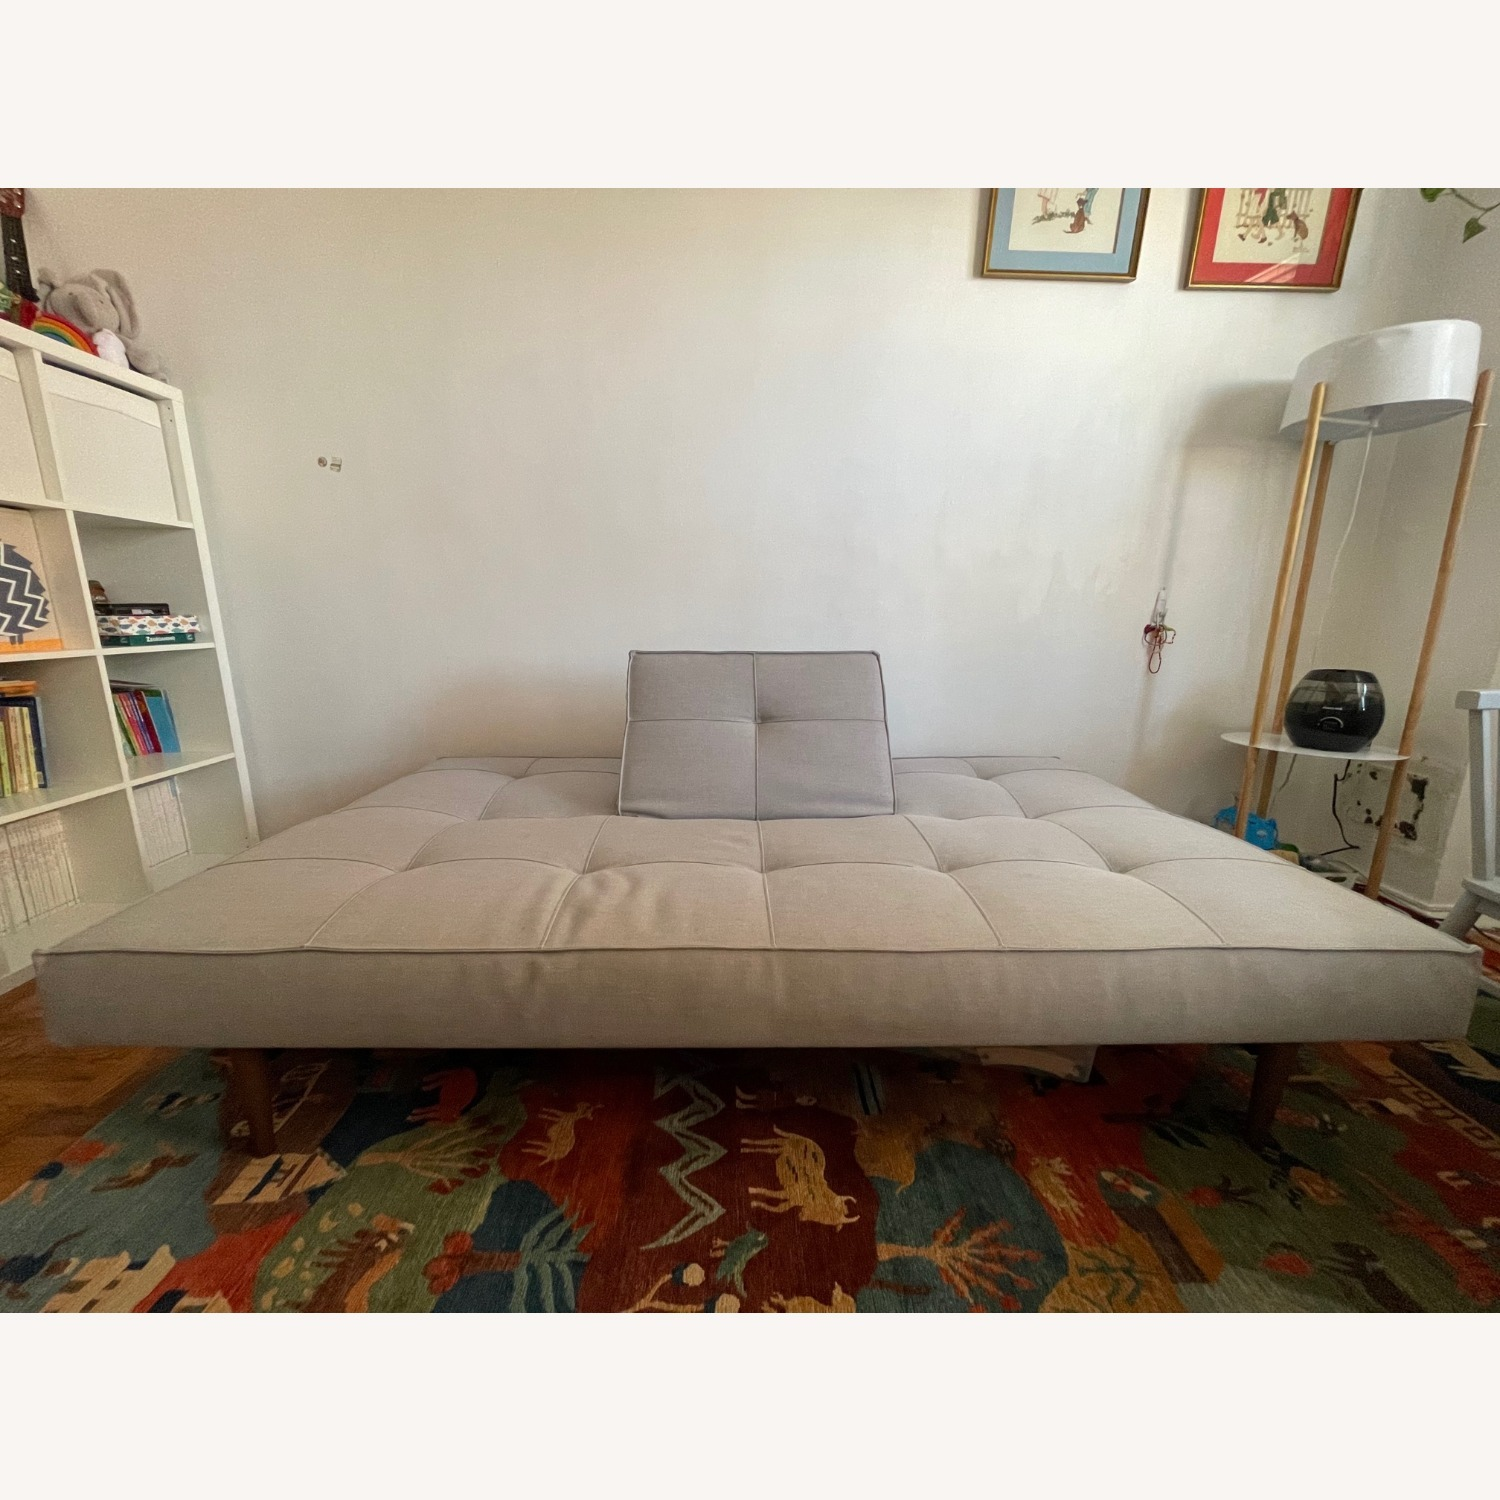 Room and Board Modern Fold Out Bed- Sofa - image-2